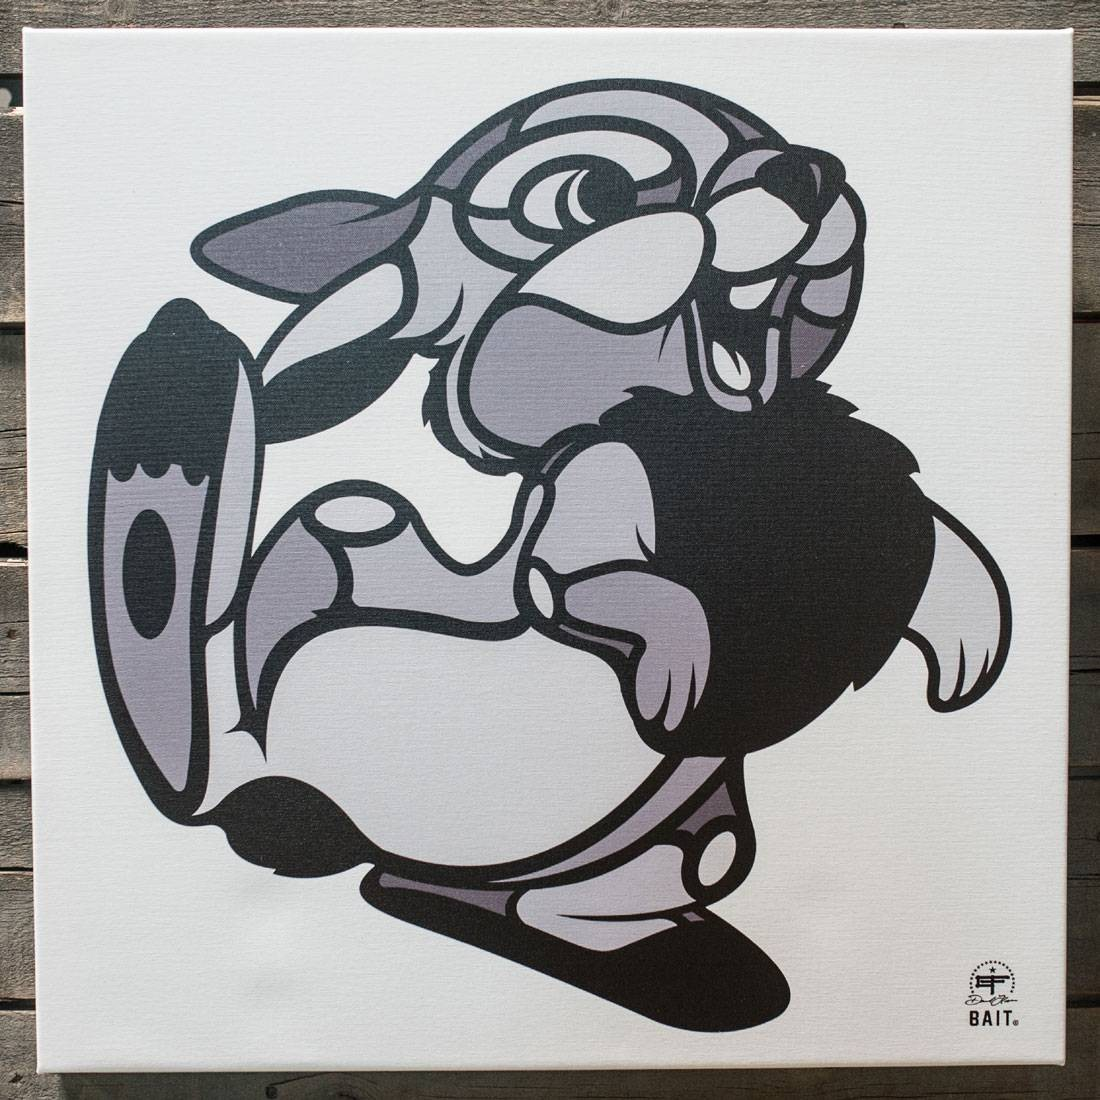 BAIT x David Flores 36 Inch Canvas - Thumper (gray)